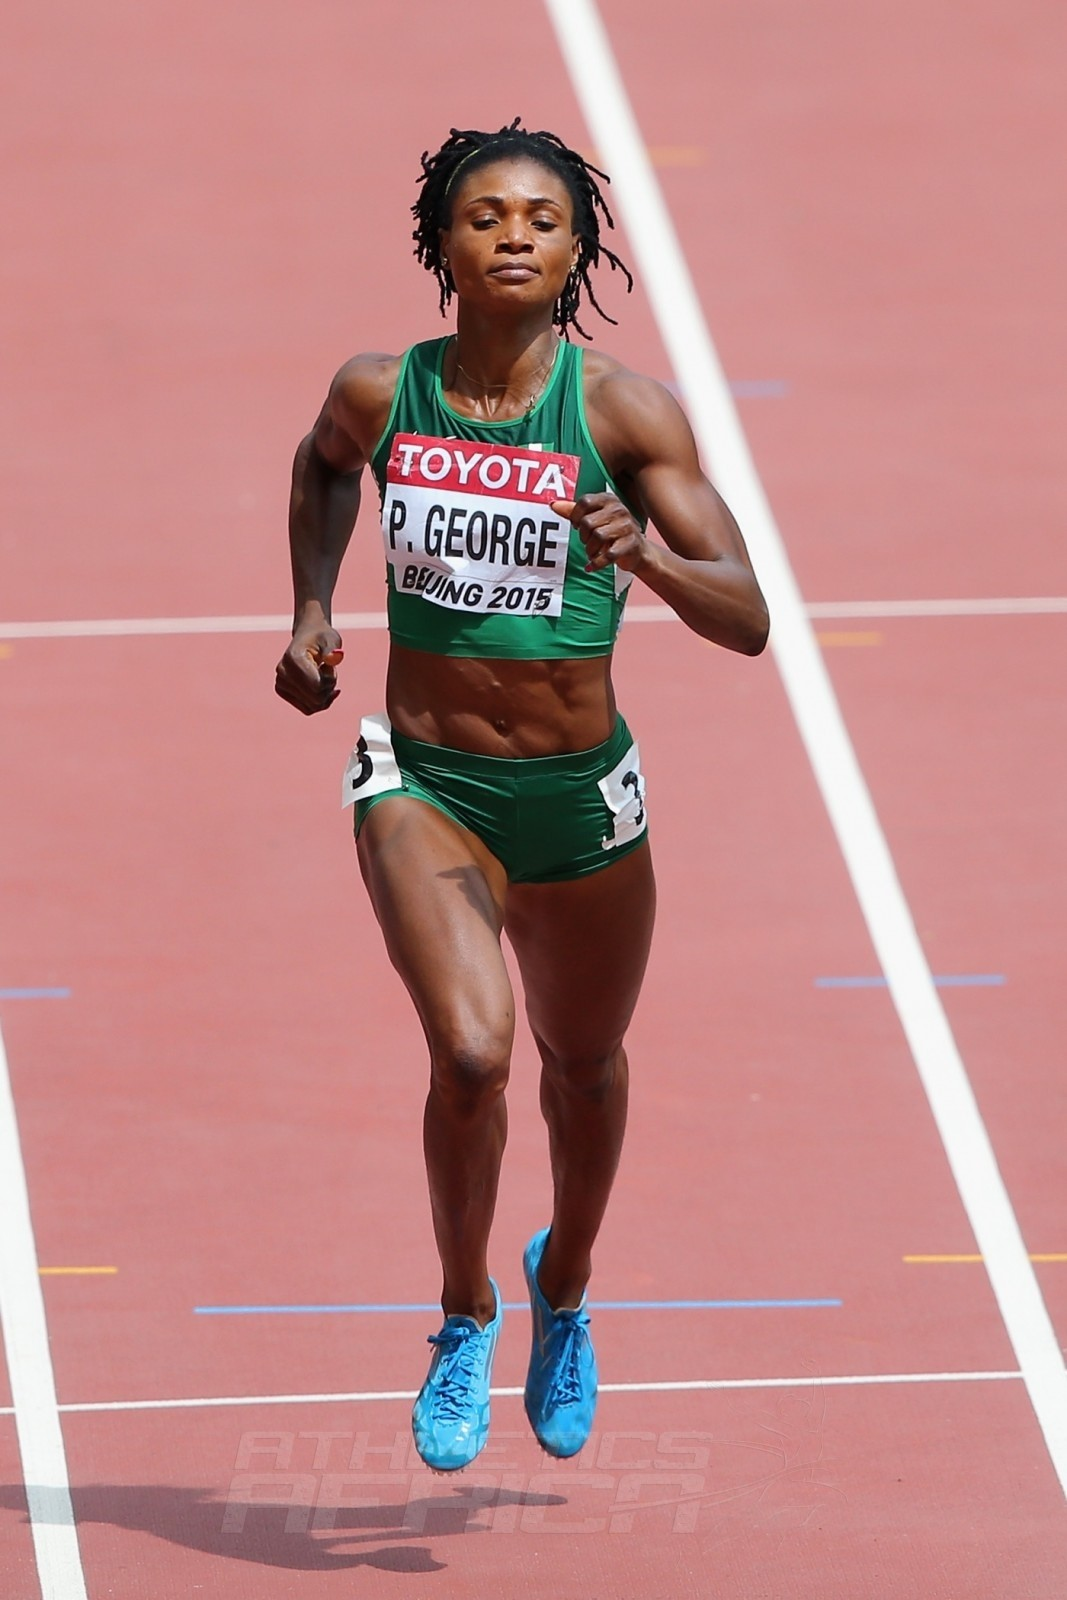 Patience Okon George of Nigeria competes in the Women's 400 metres heats during day three of the 15th IAAF World Athletics Championships Beijing 2015 at Beijing National Stadium on August 24, 2015 in Beijing, China.  (Photo by Lintao Zhang/Getty Images for IAAF)